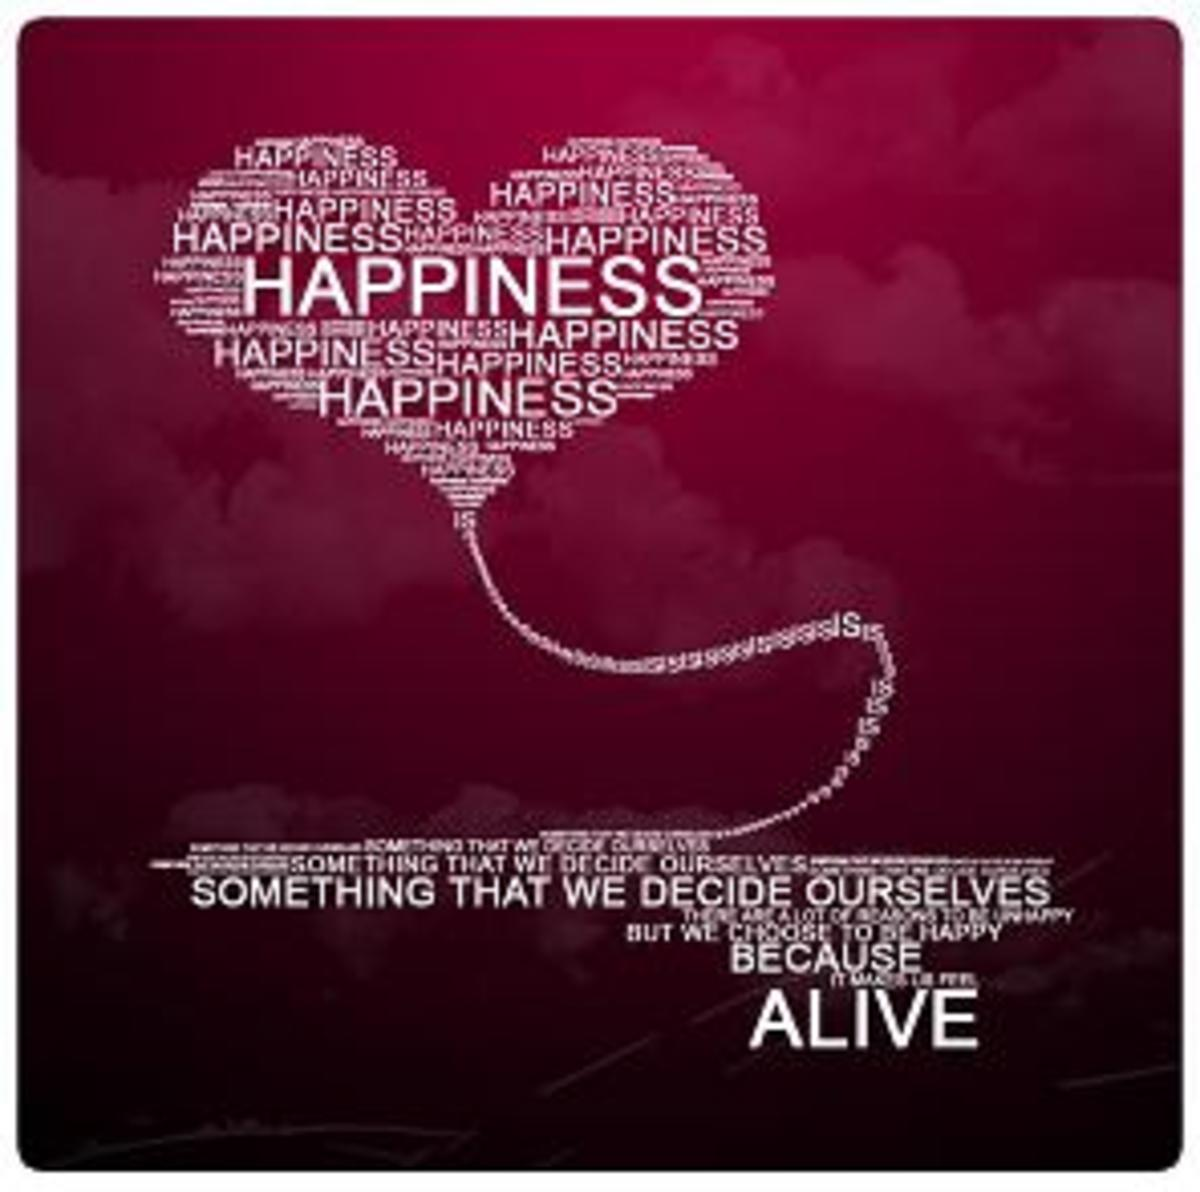 Happiness Motivational Poster in red with white wording shaped in a heart detailing that Happiness is something we decide for ourselves